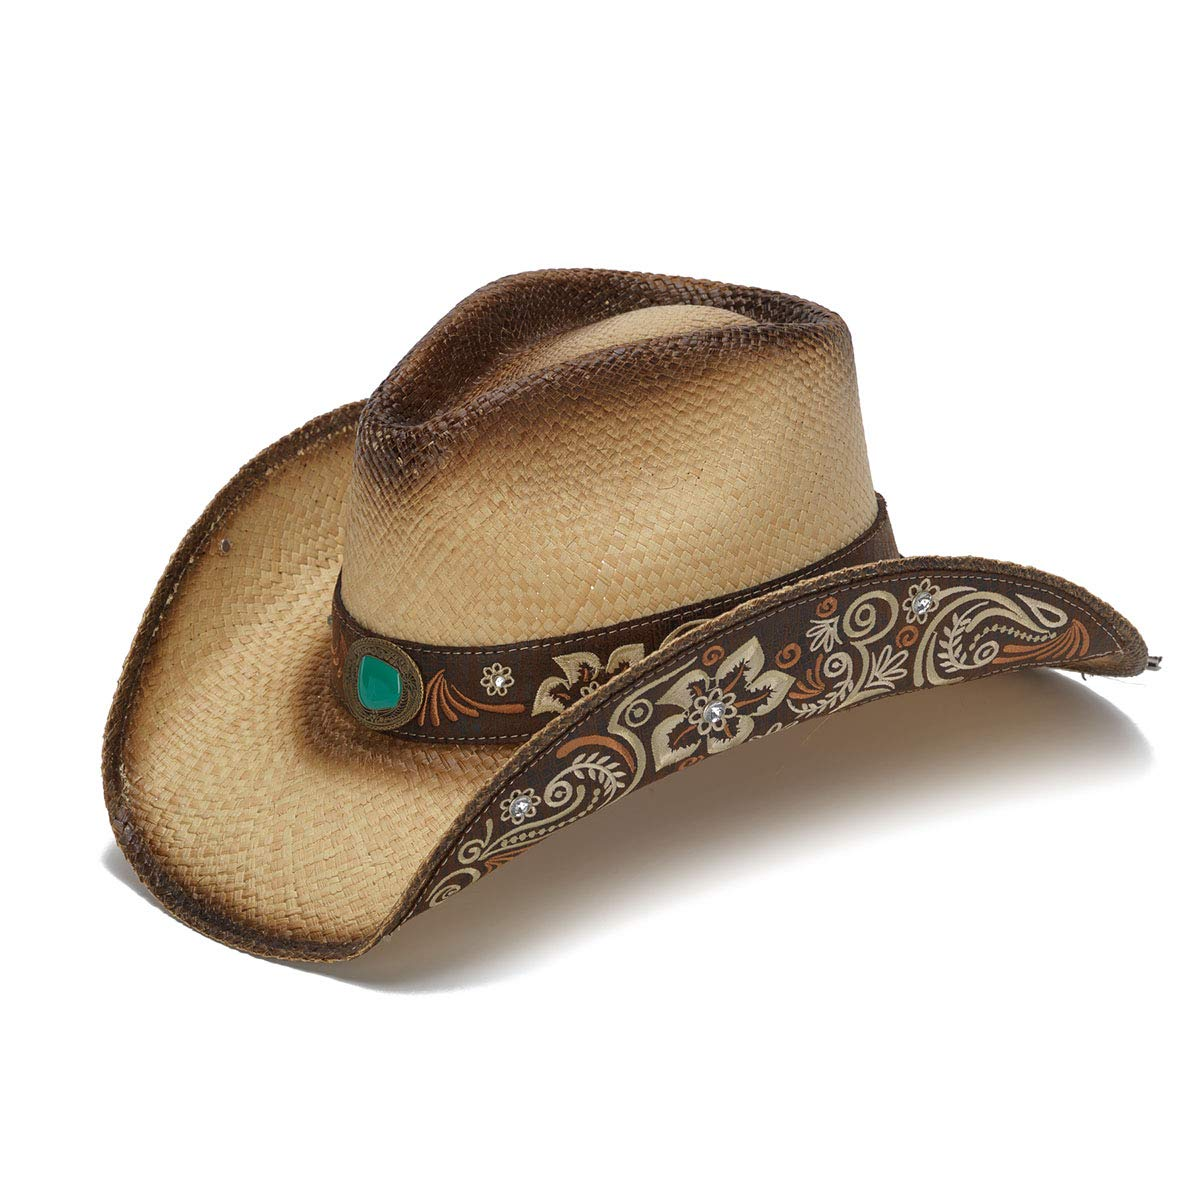 Stampede Hats Women's Sky Action Floral Embroidered Western Hat S Tea Stain by Stampede Hats (Image #1)